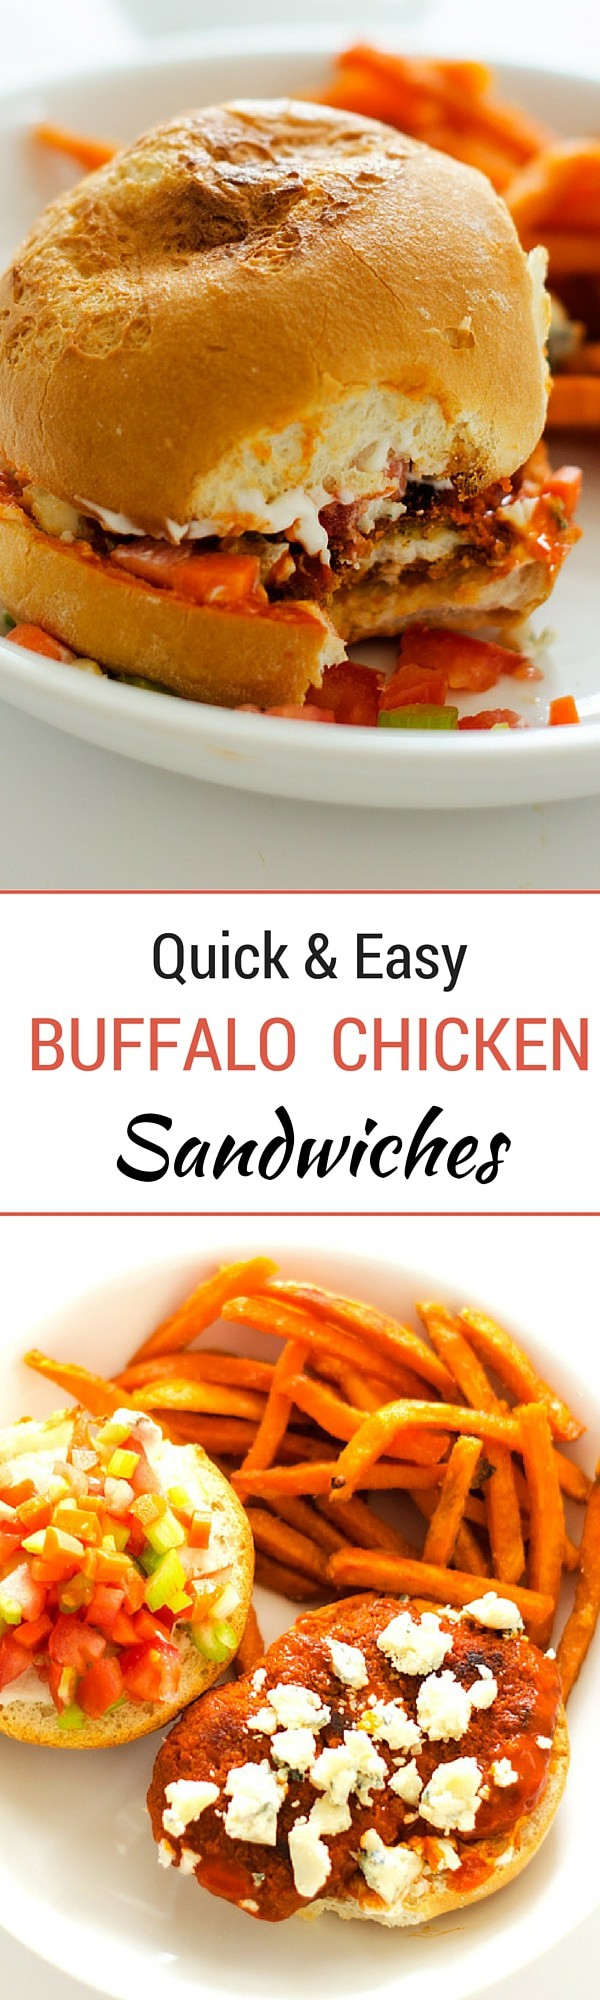 Buffalo Chicken Sandwiches- Looking for an easy weeknight meal the whole family will love? These quick and easy Buffalo Chicken Sandwiches served with Sweet Potato Fries are your solution! - WendyPolisi.com - #farmtoflavorrecipes